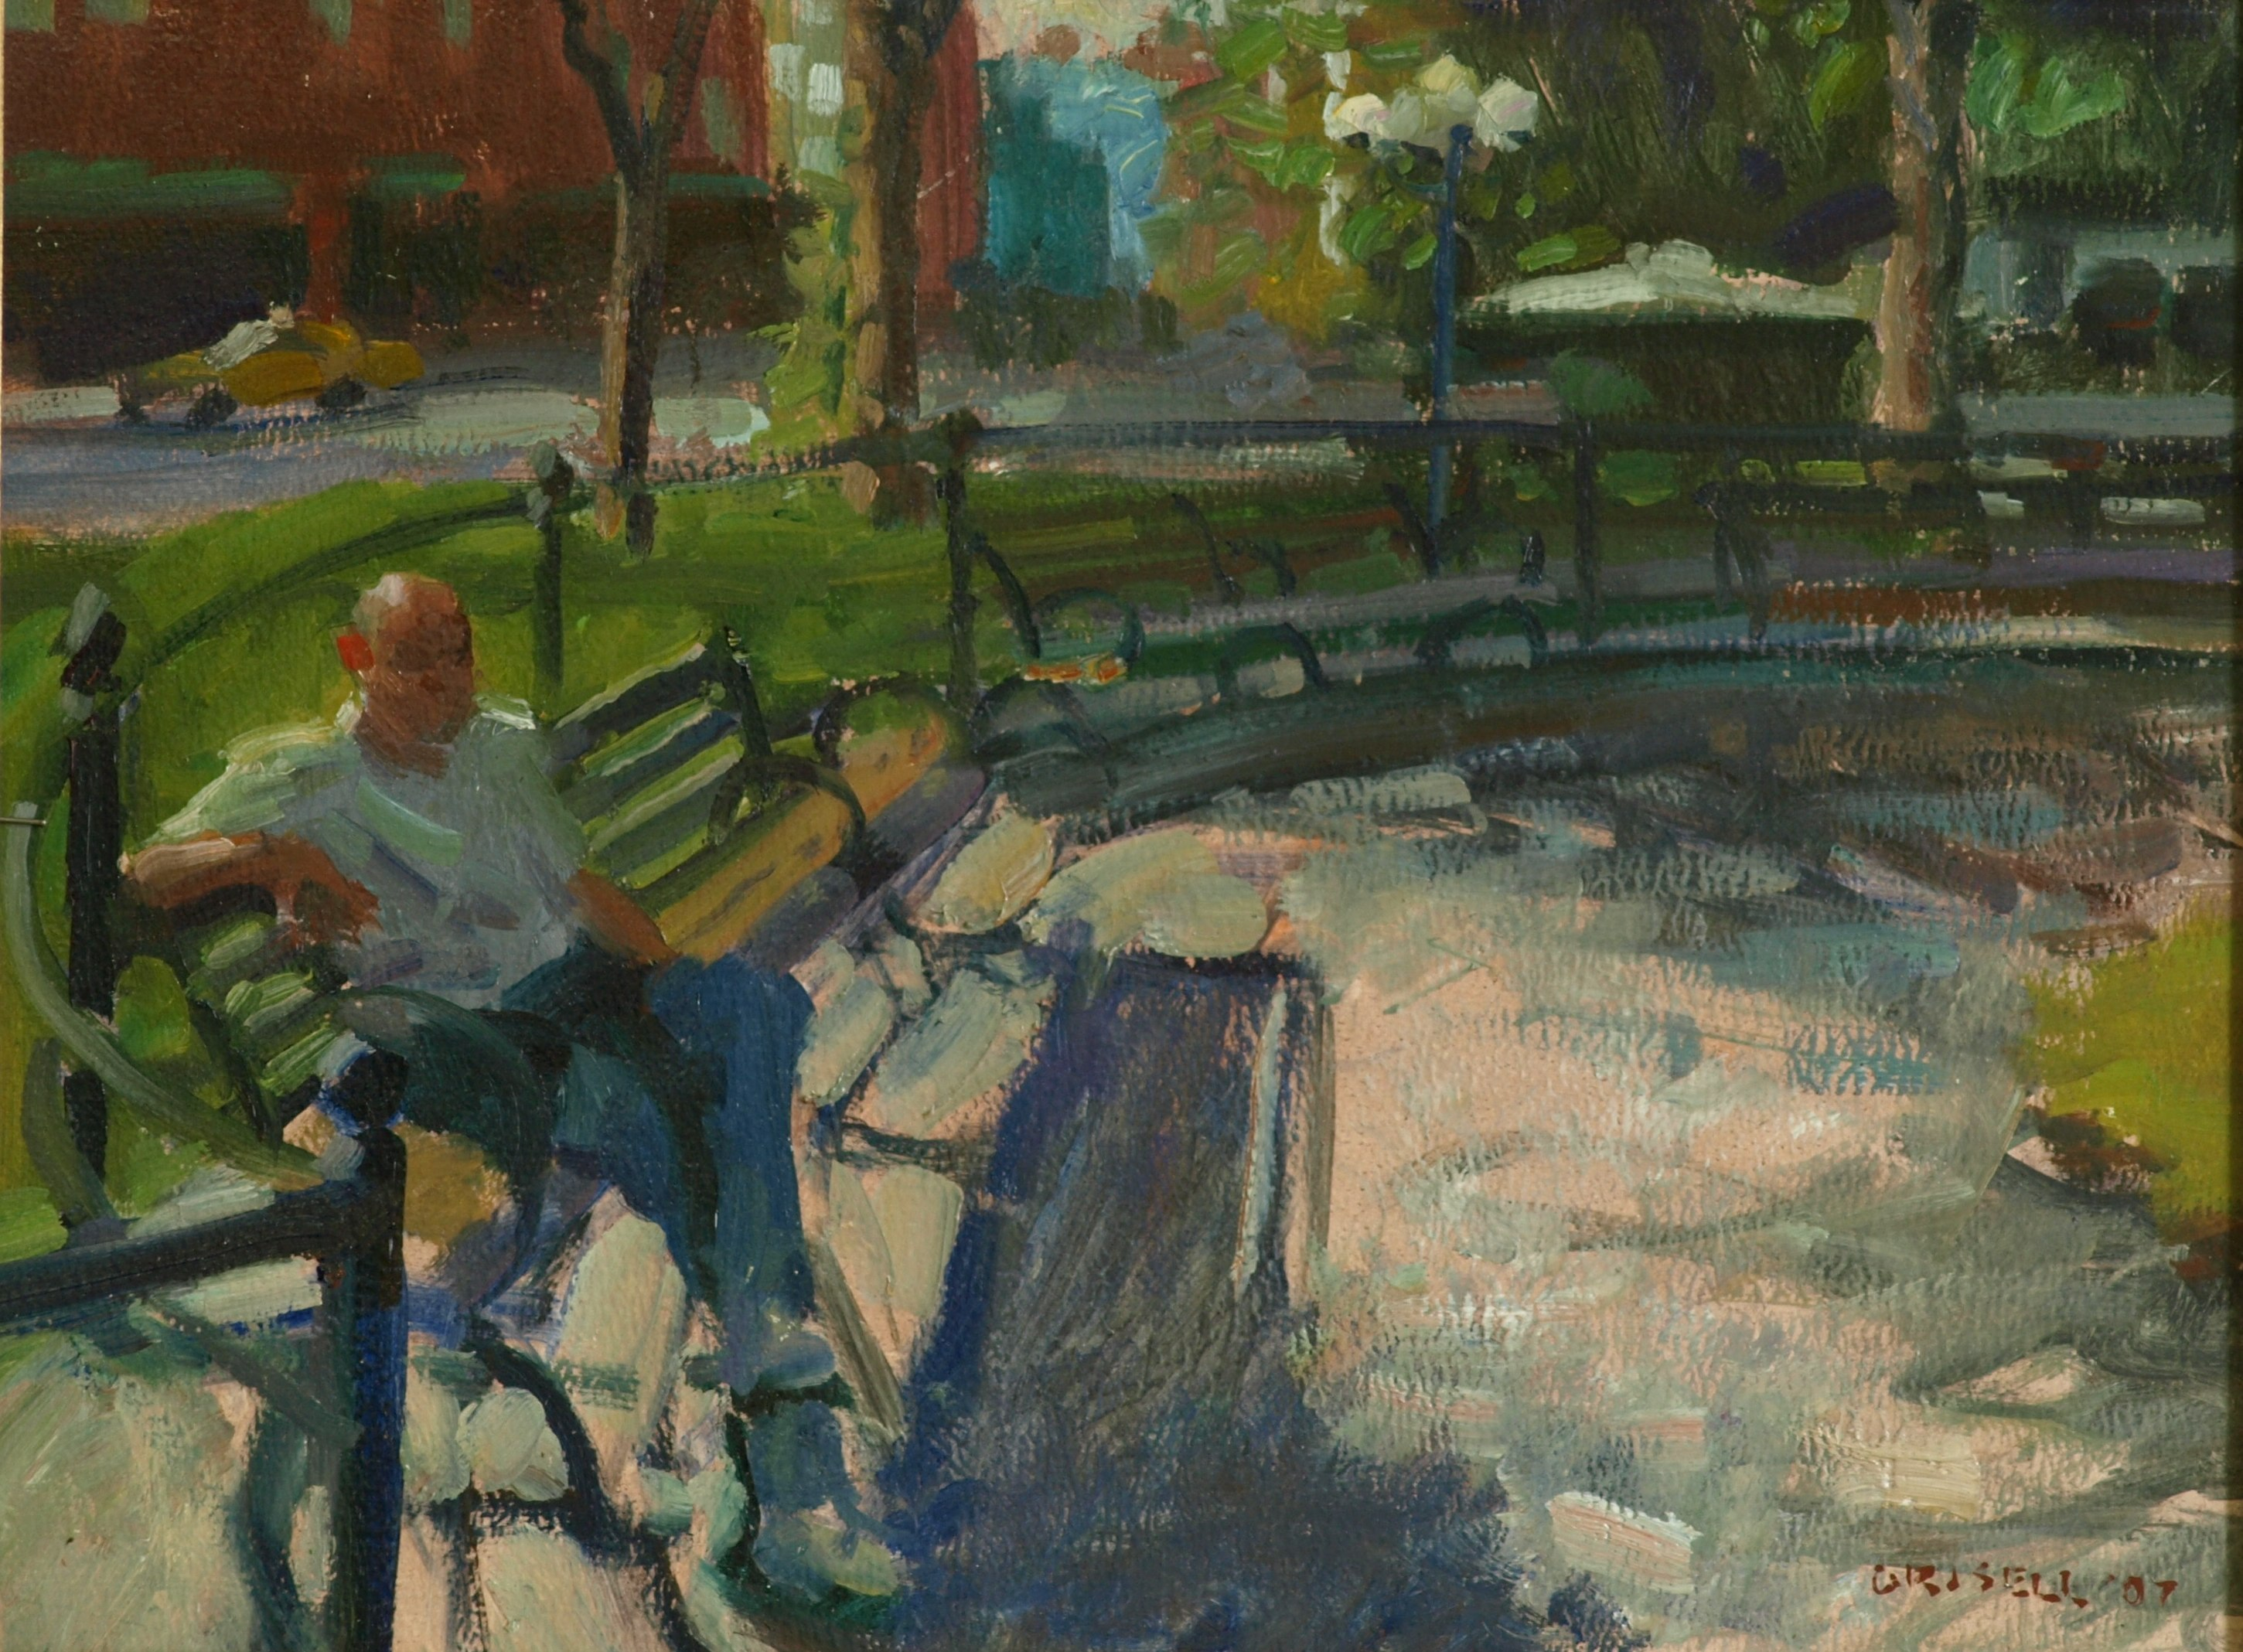 Park Bench - Union Square, Oil on Panel, 12 x 16 Inches, by Susan Grisell, $300